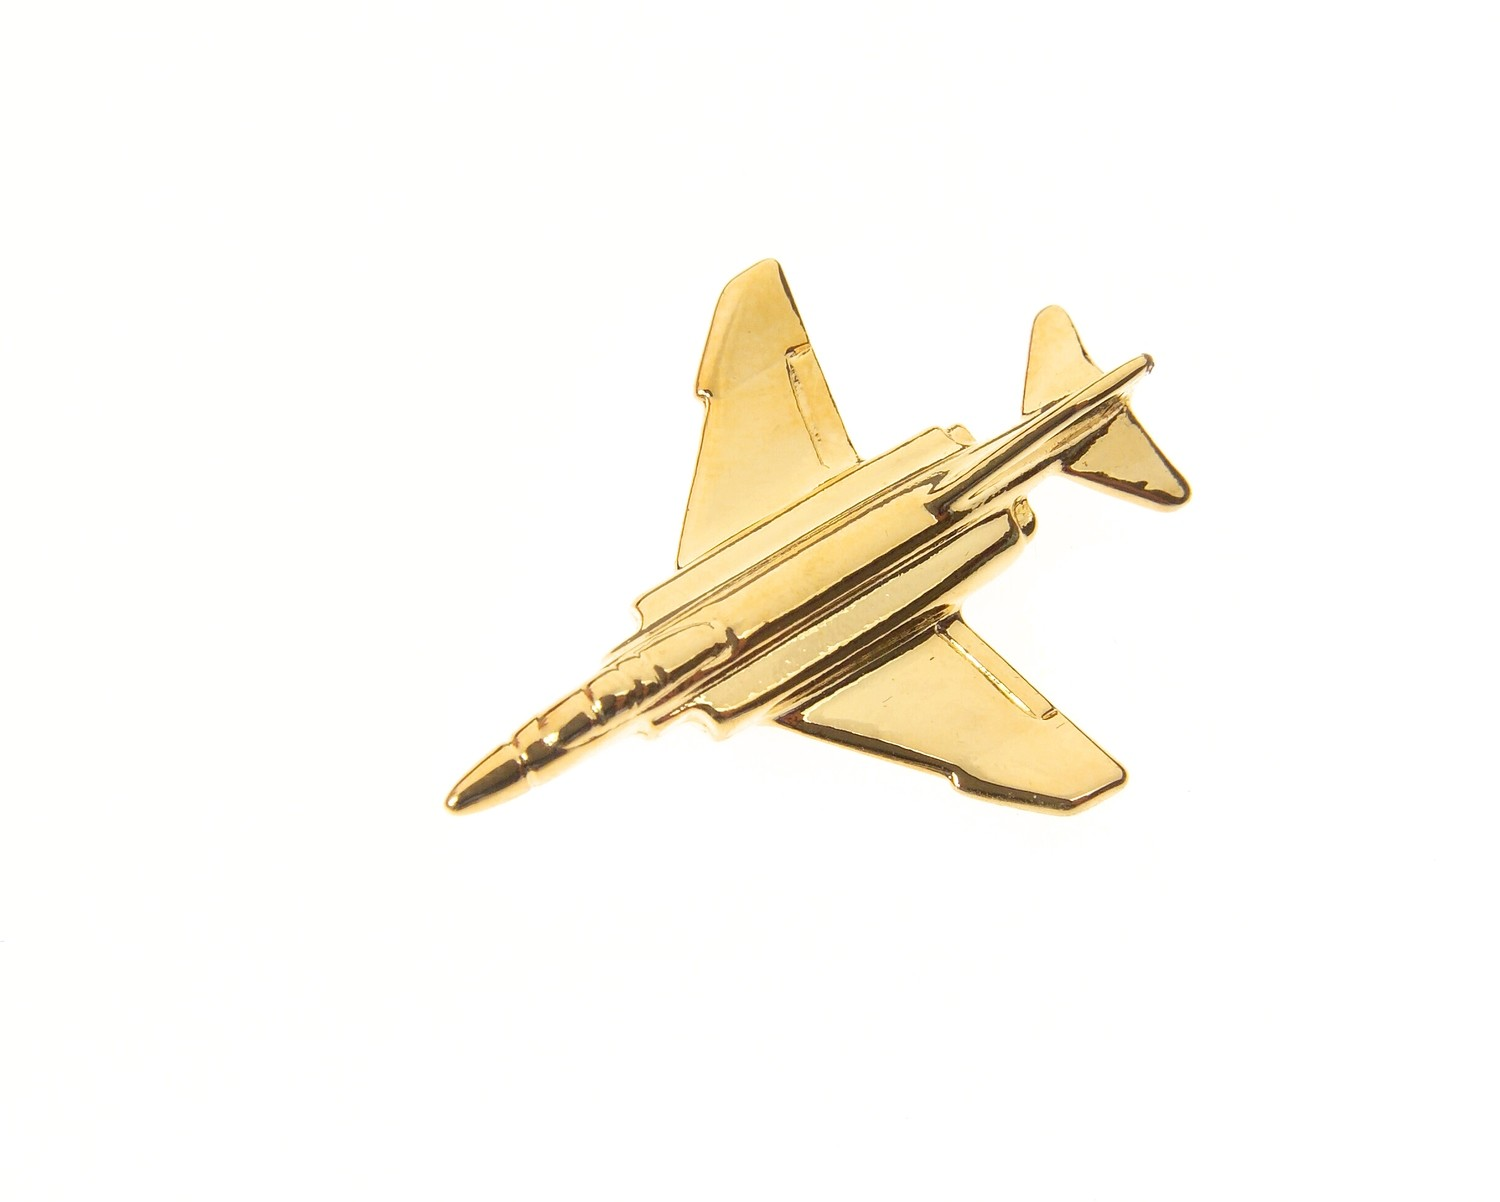 F4 Phantom II Gold Plated Tie / Lapel Pin